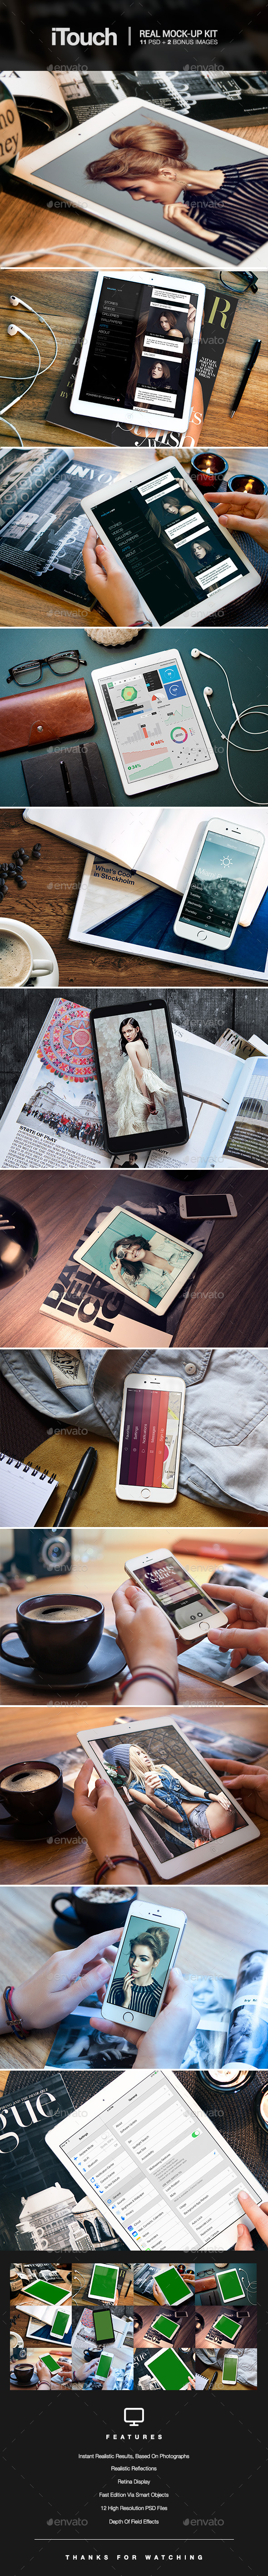 iTouch - 12 Photorealistic MockUp - Mobile Displays